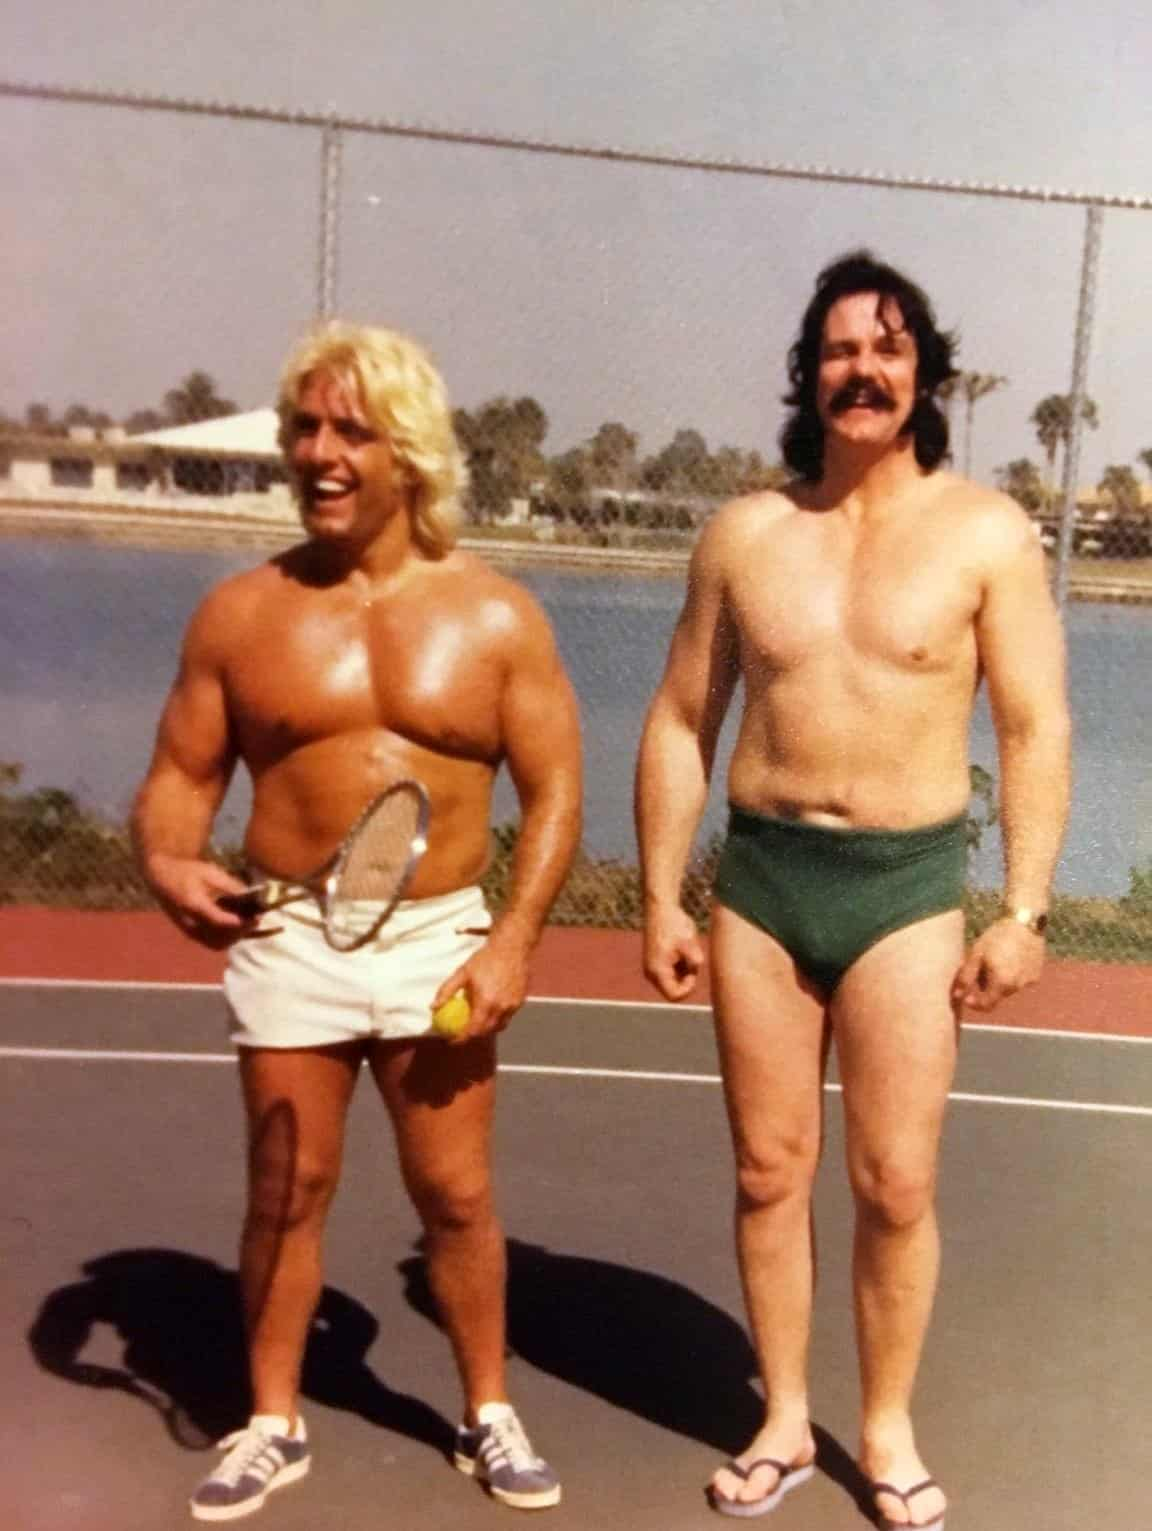 A little tennis with Ric Flair and his good friend Blackjack Mulligan